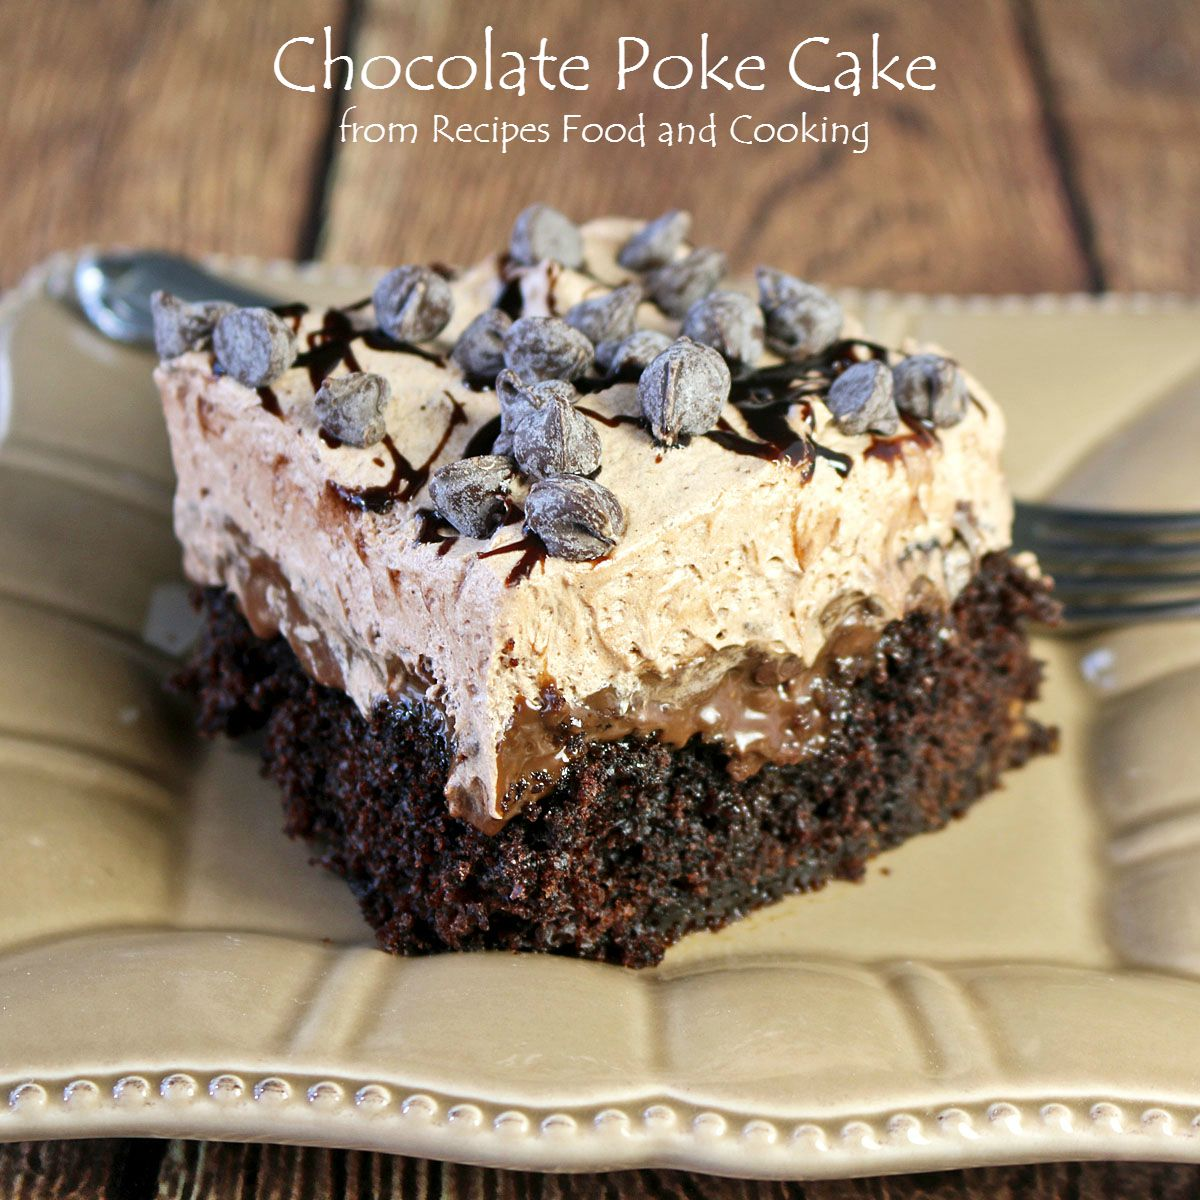 Chocolate Poke Cake Choctoberfest Recipes Food And Cooking